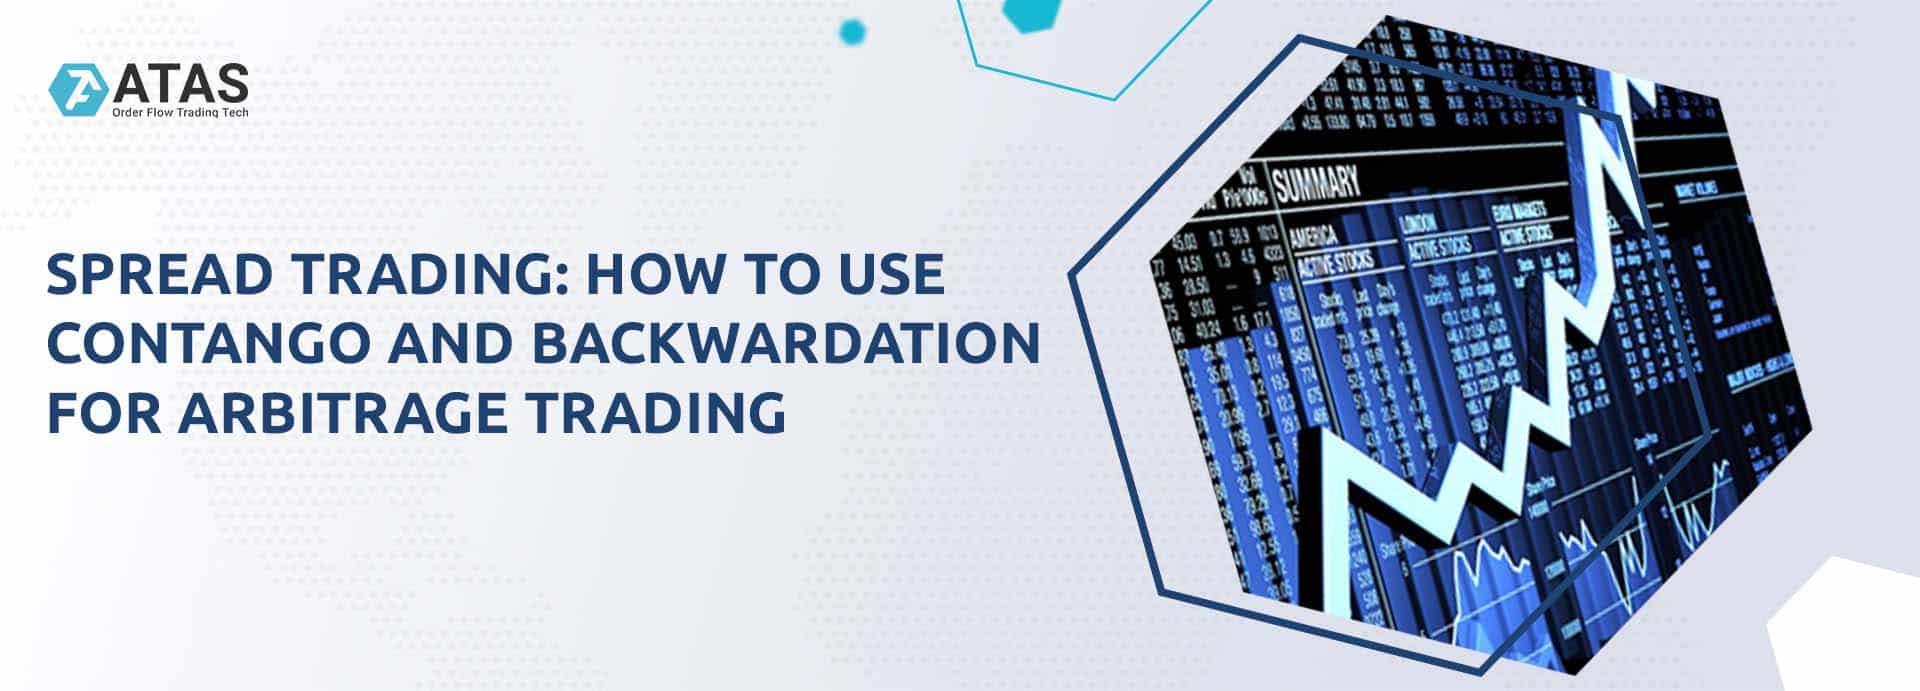 Spread trading: how to use contango and backwardation for arbitrage trading